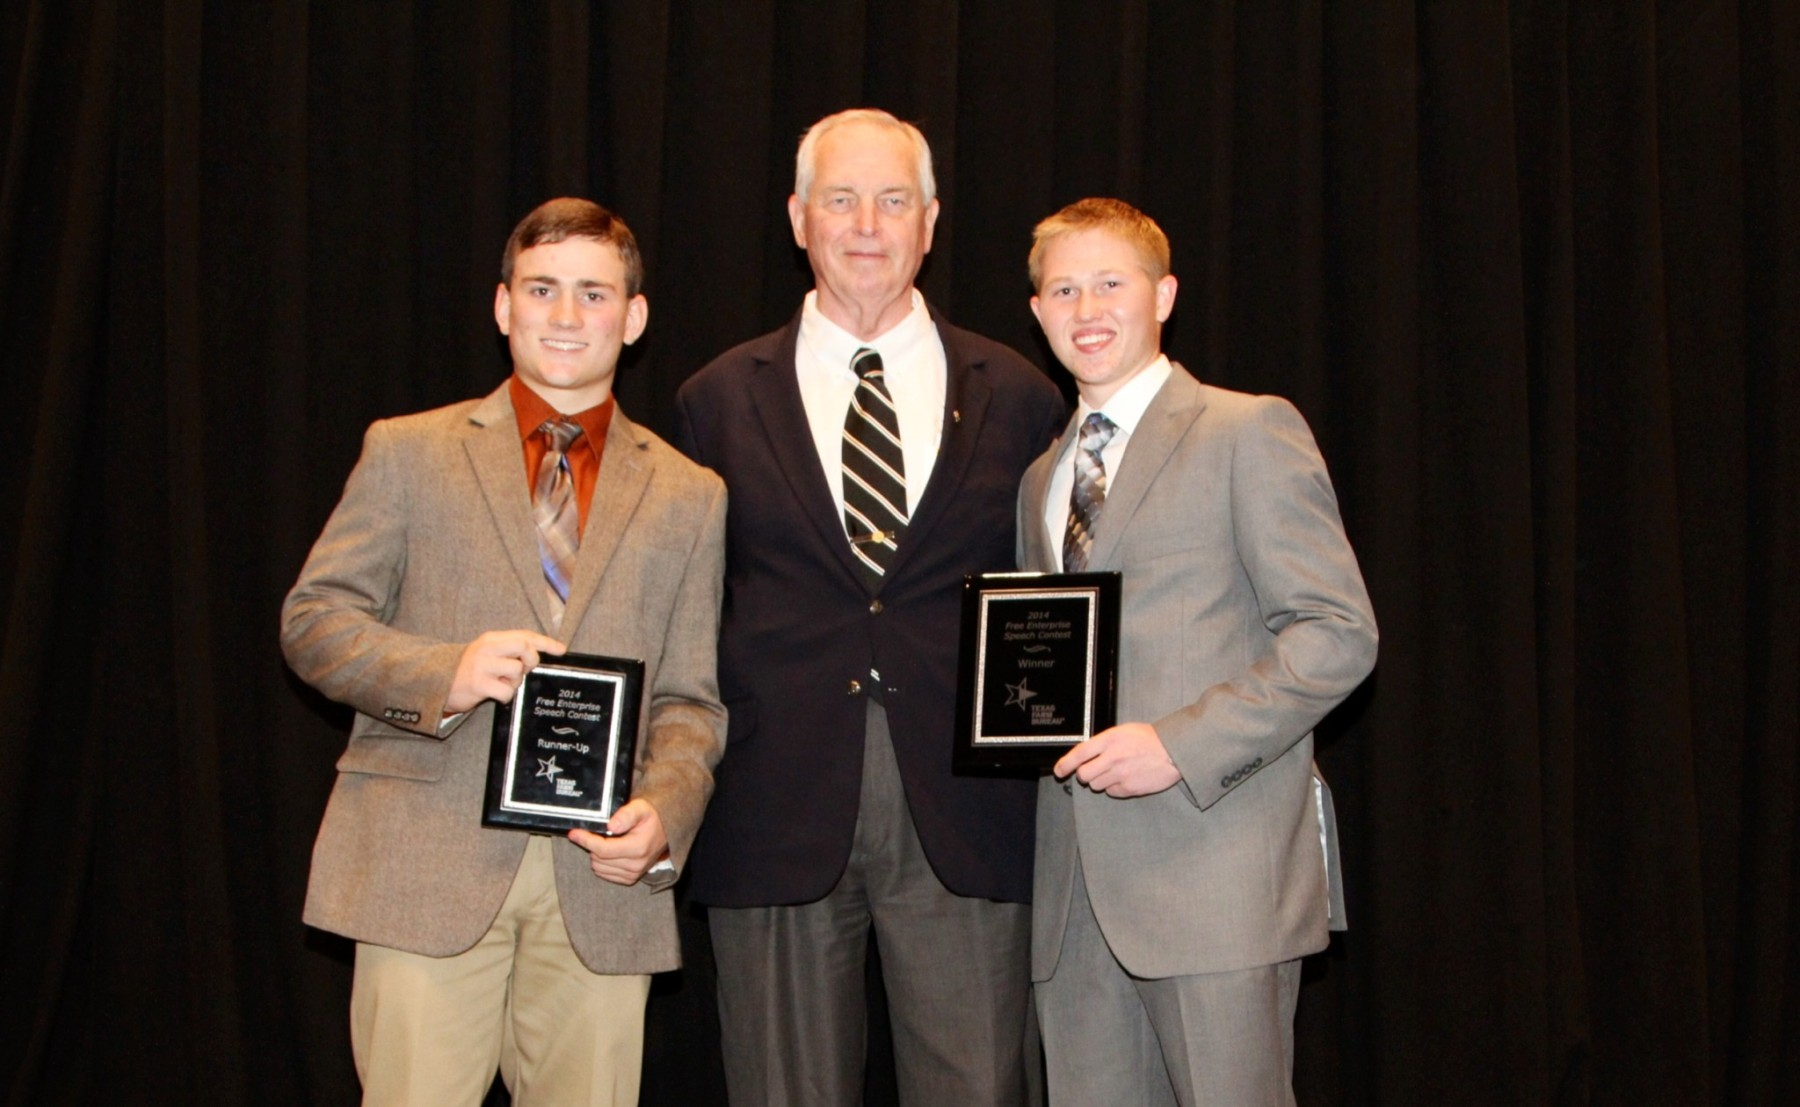 Conner McKinzie of Erath County (right) and Dylan Davidson of Childress County (left) have been named winner and runner-up, respectively, of Texas Farm Bureau's 2014 Free Enterprise Speech Contest at the 81st Annual Meeting in Corpus Christi. || Photo by Texas Farm Bureau